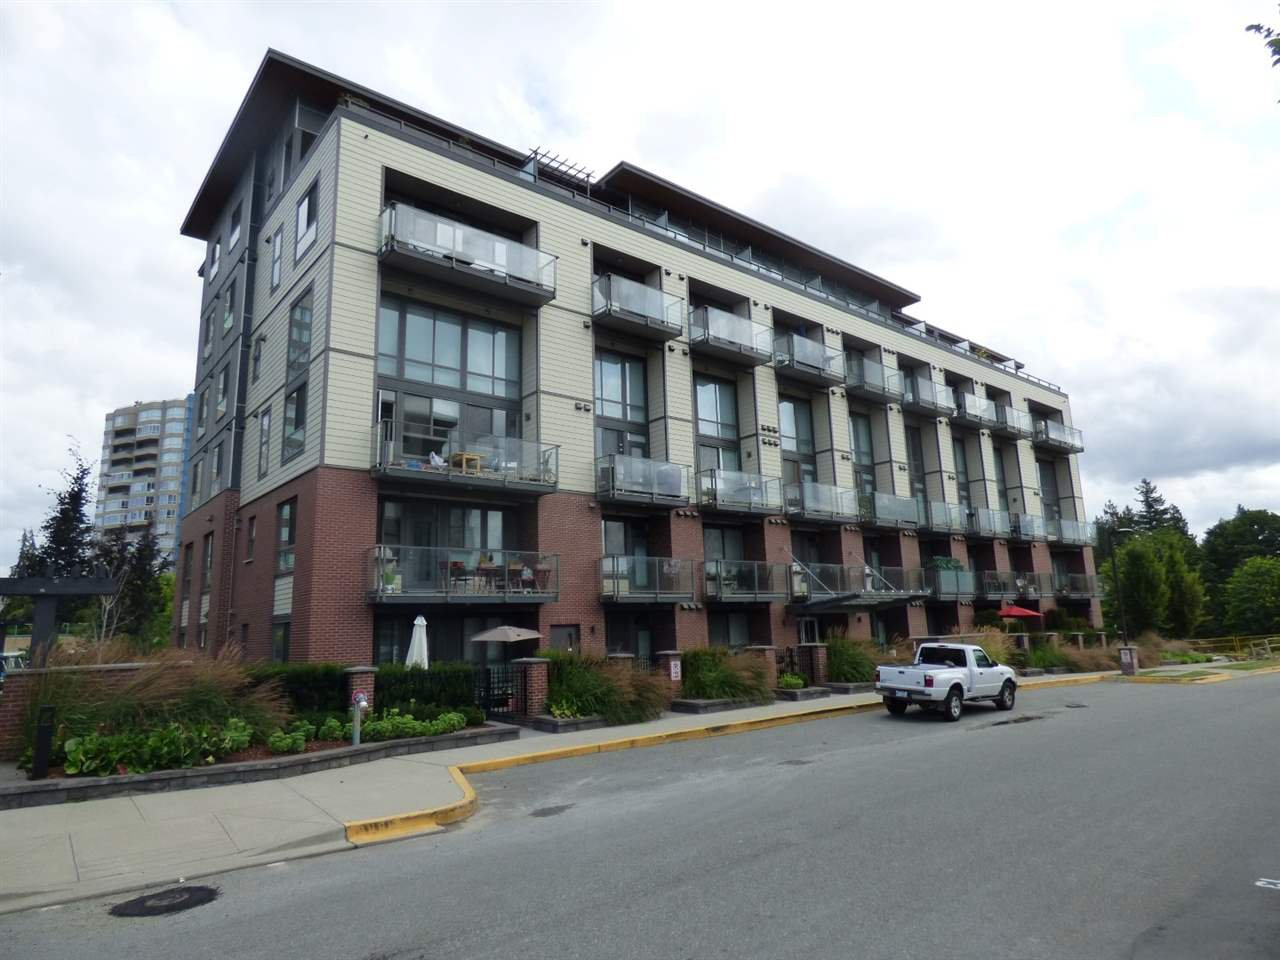 Main Photo: 501 3090 GLADWIN Road in Abbotsford: Central Abbotsford Condo for sale : MLS®# R2388022